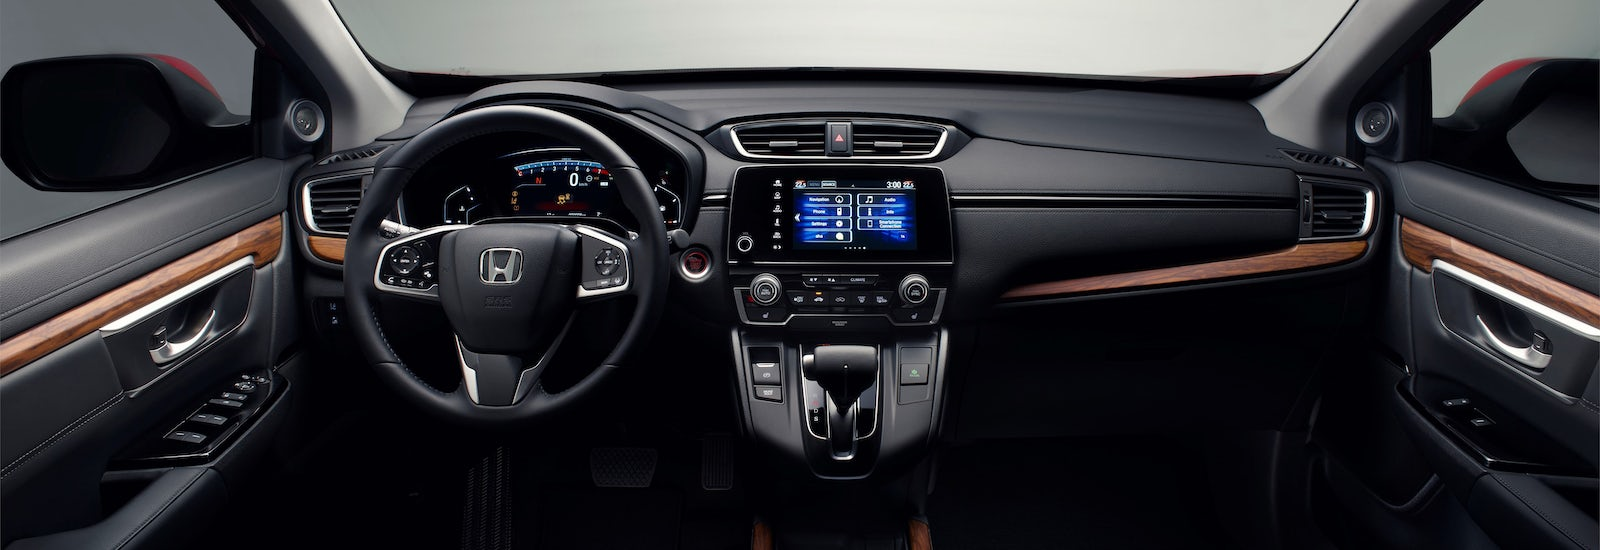 2018 Honda CR-V price, specs and release date | carwow